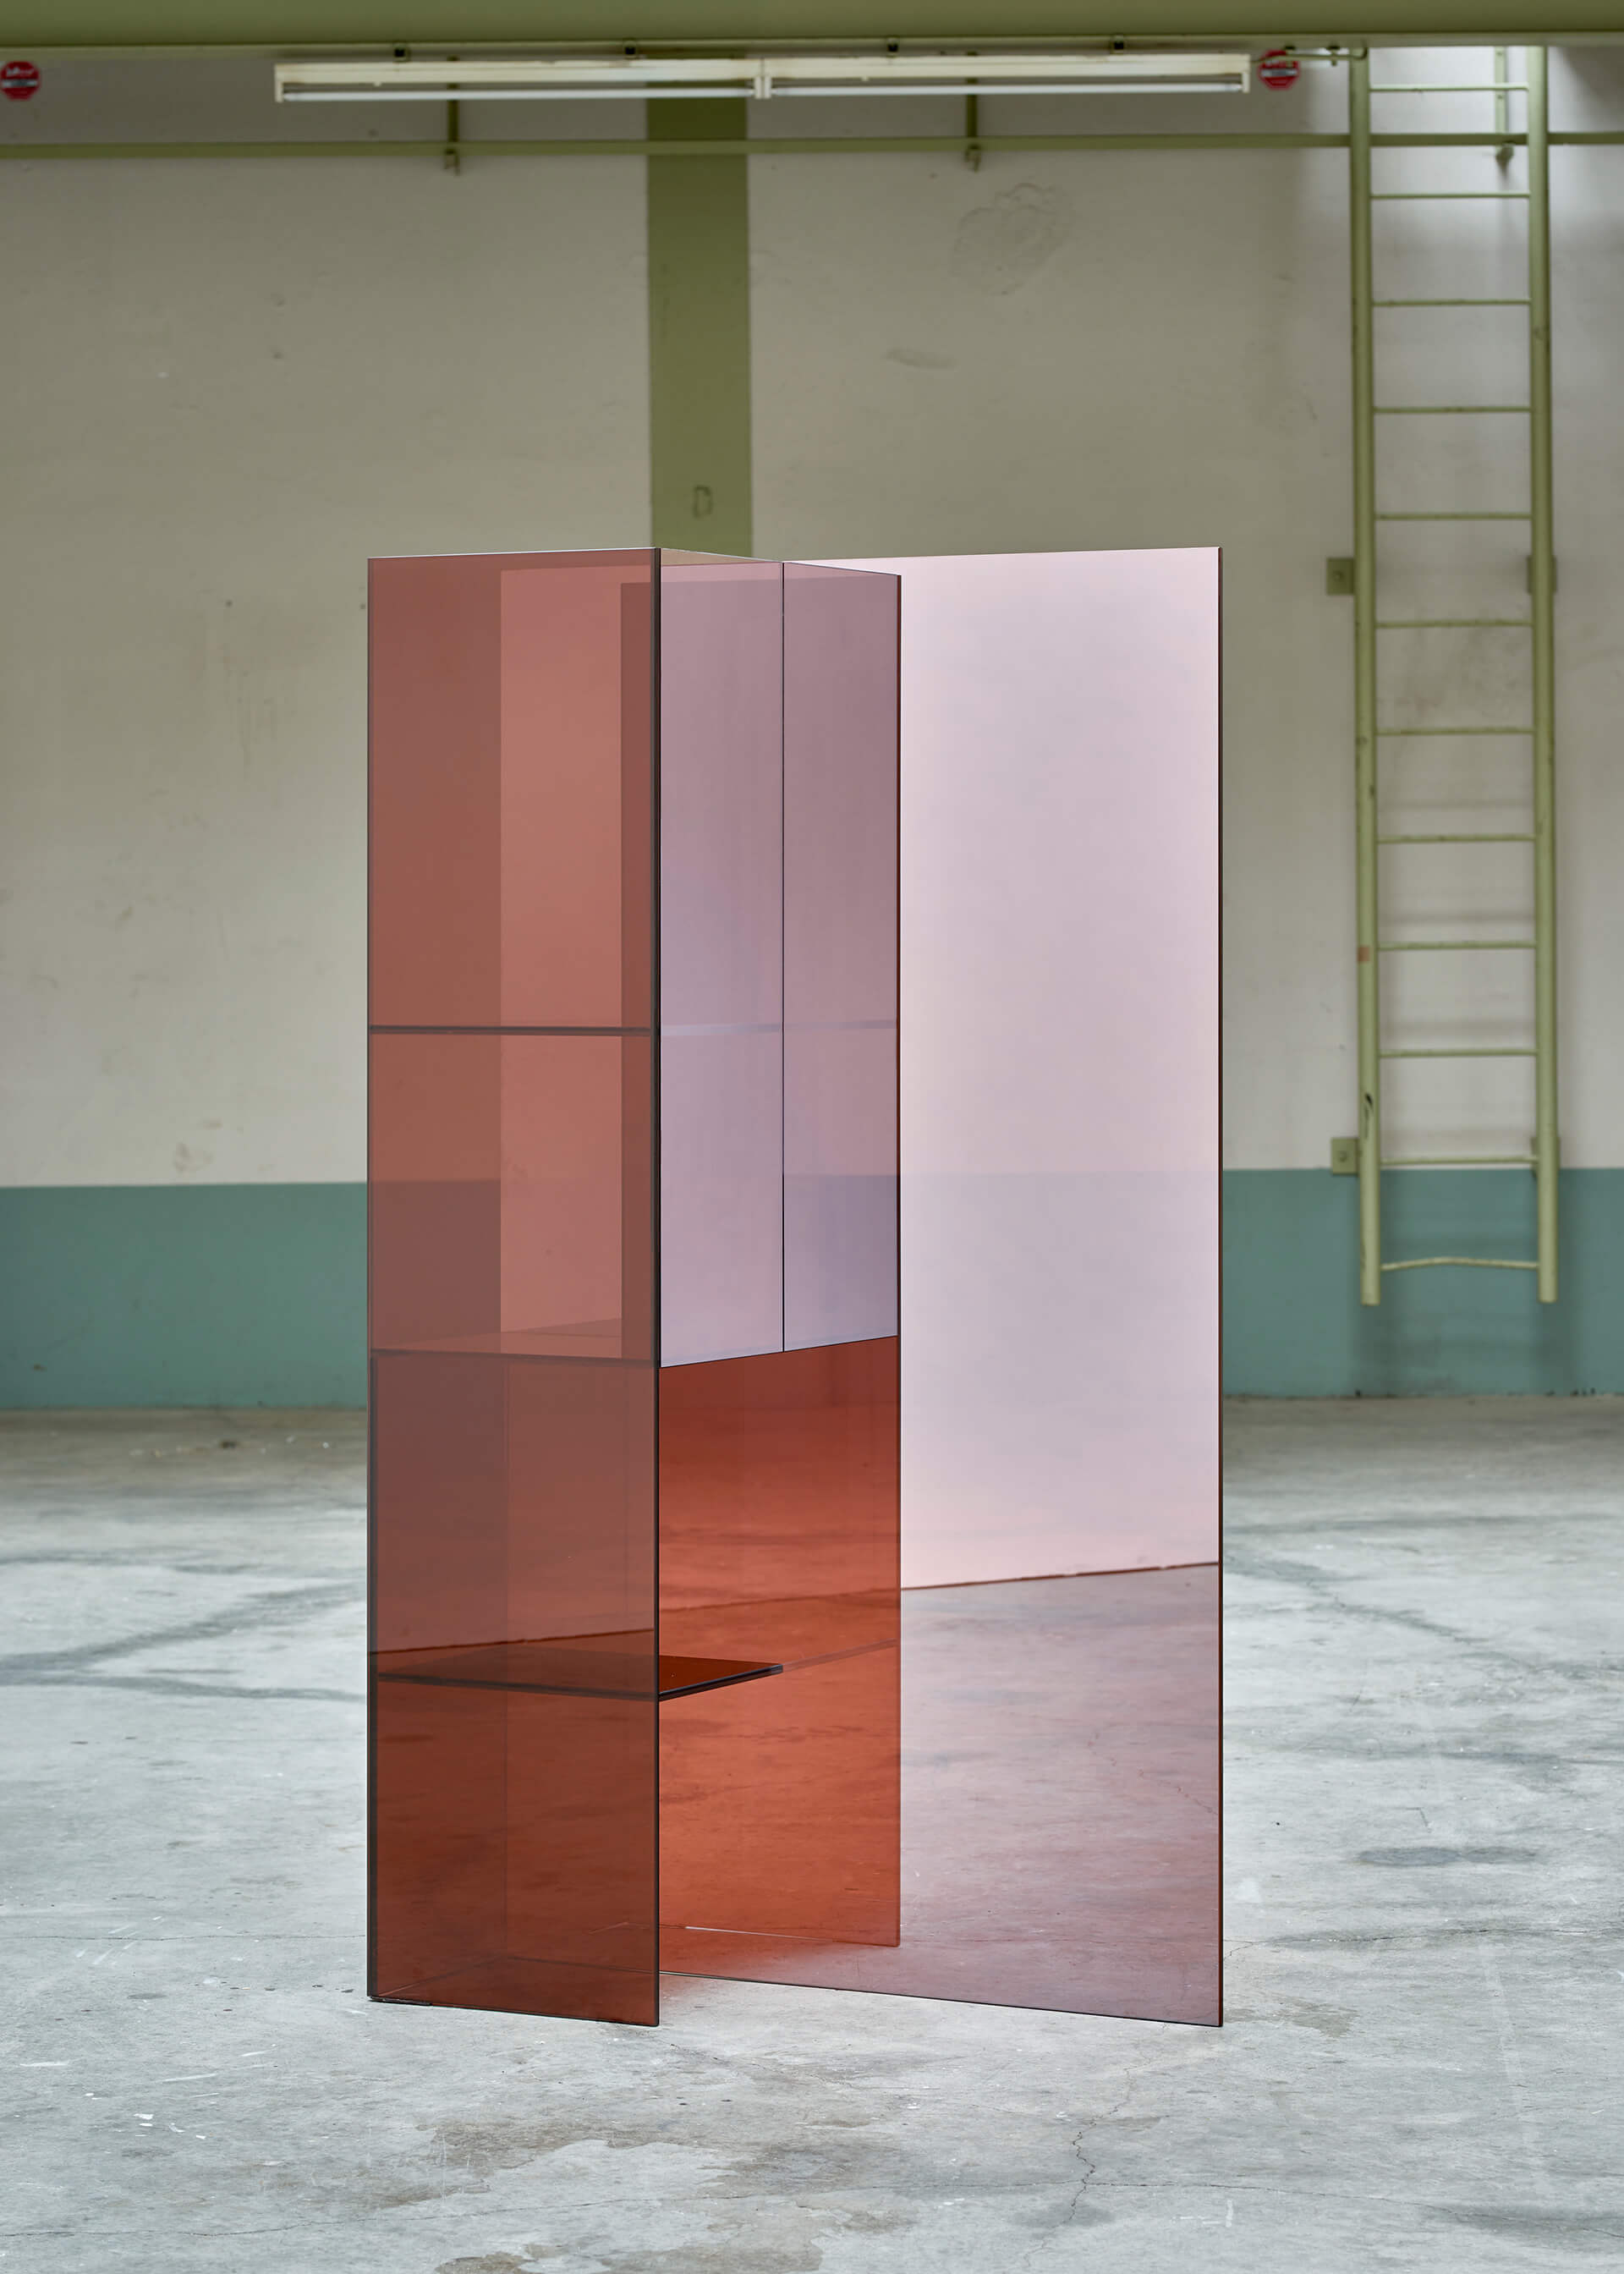 Glimpse Mirrored Screens | Made in the Netherlands: Curated by Wendy Plomp | STIRworld